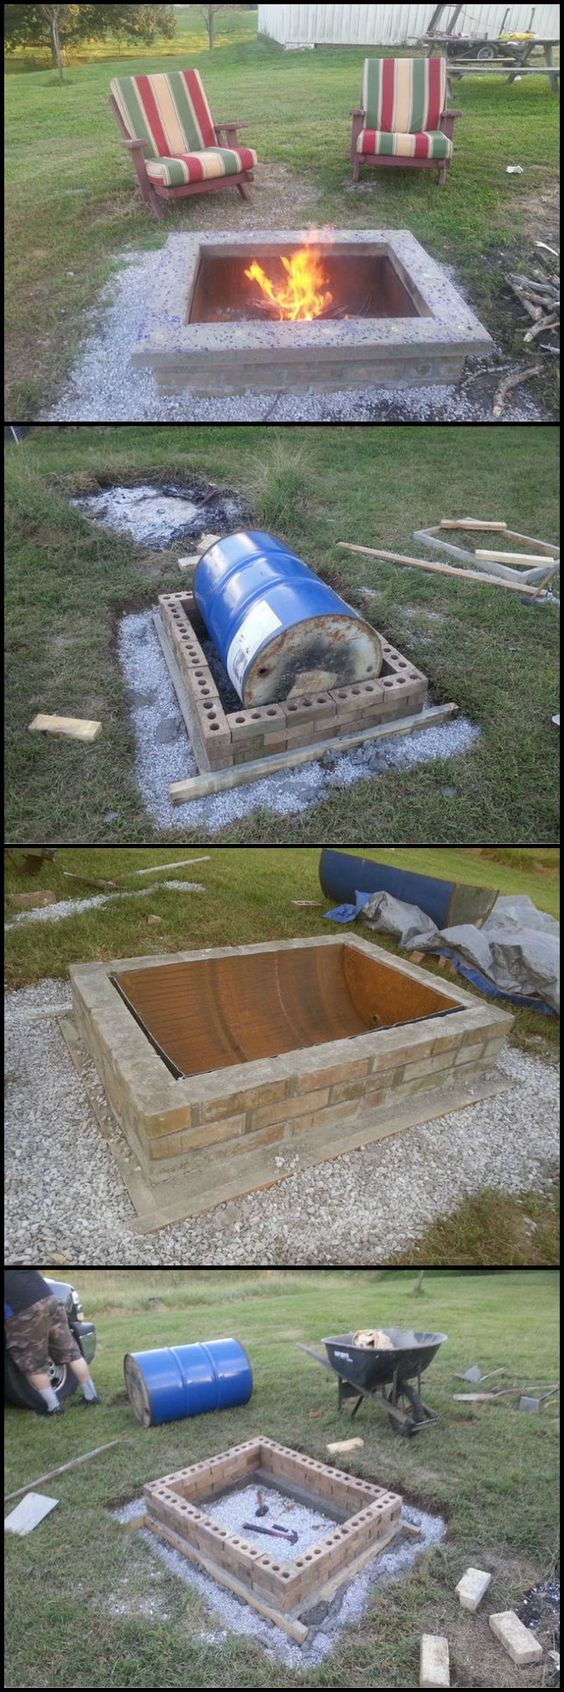 How To Build Your Own Fire Pit With Custom Cap Stone http://diyprojects.ideas2live4.com/2014/12/11/diy-fire-pit-with-custom-cap-stone/ Do you like the idea of being able to unwind in your outdoor space after a hard day's work? Spending some outdoor time during the night will be much more enjoyable if there is a fire pit to keep you warm.